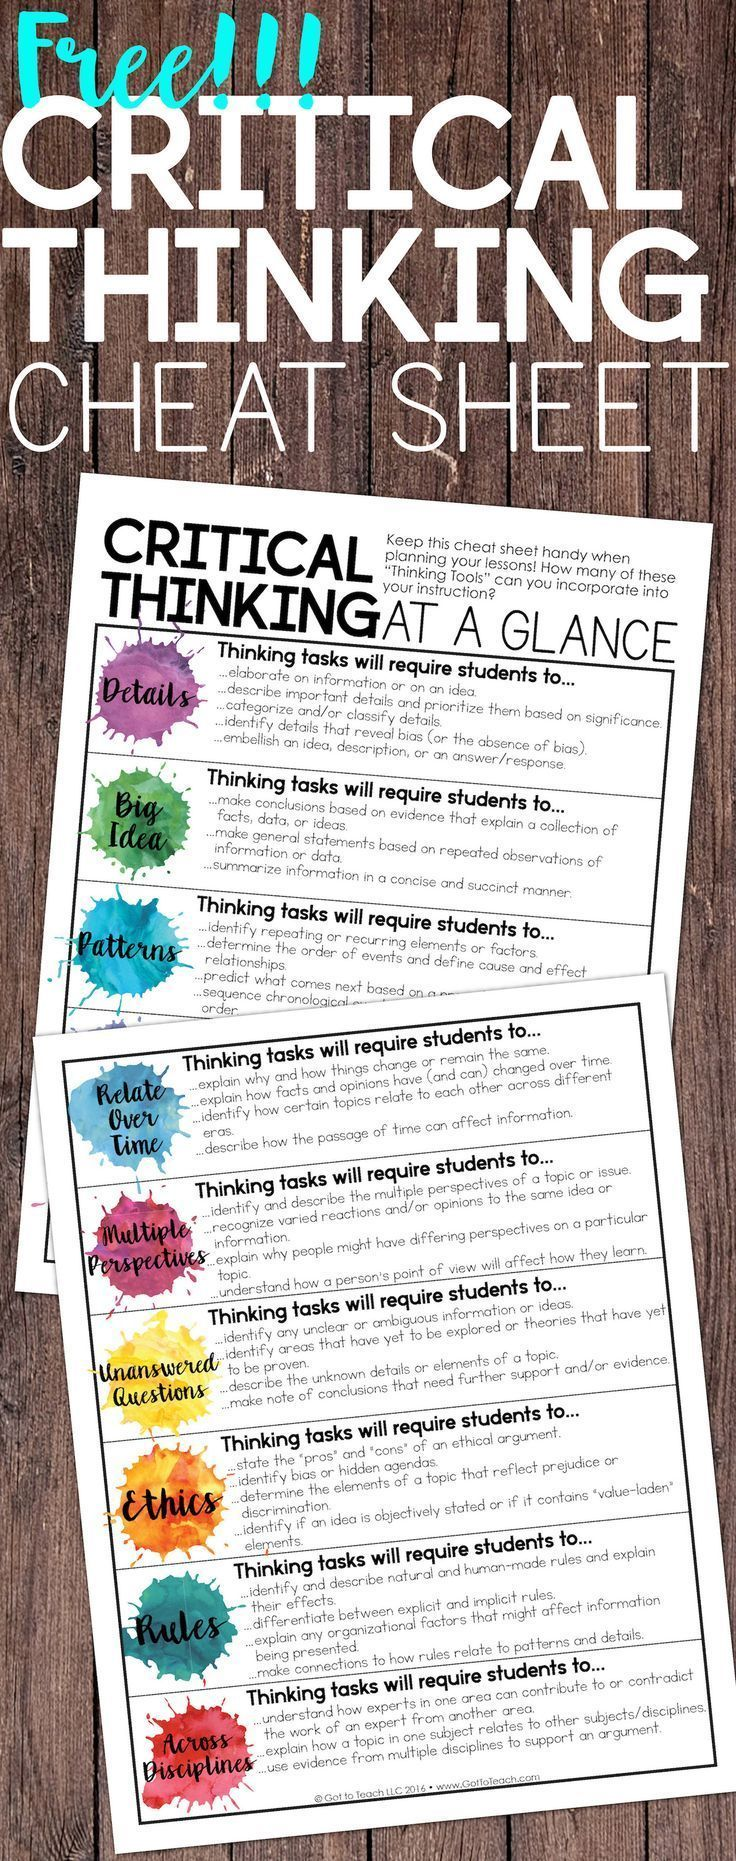 critical thinking articles for students How can students own their learning with critical thinking activities they'll really love allowing our students to take stands on issues that matter to them.